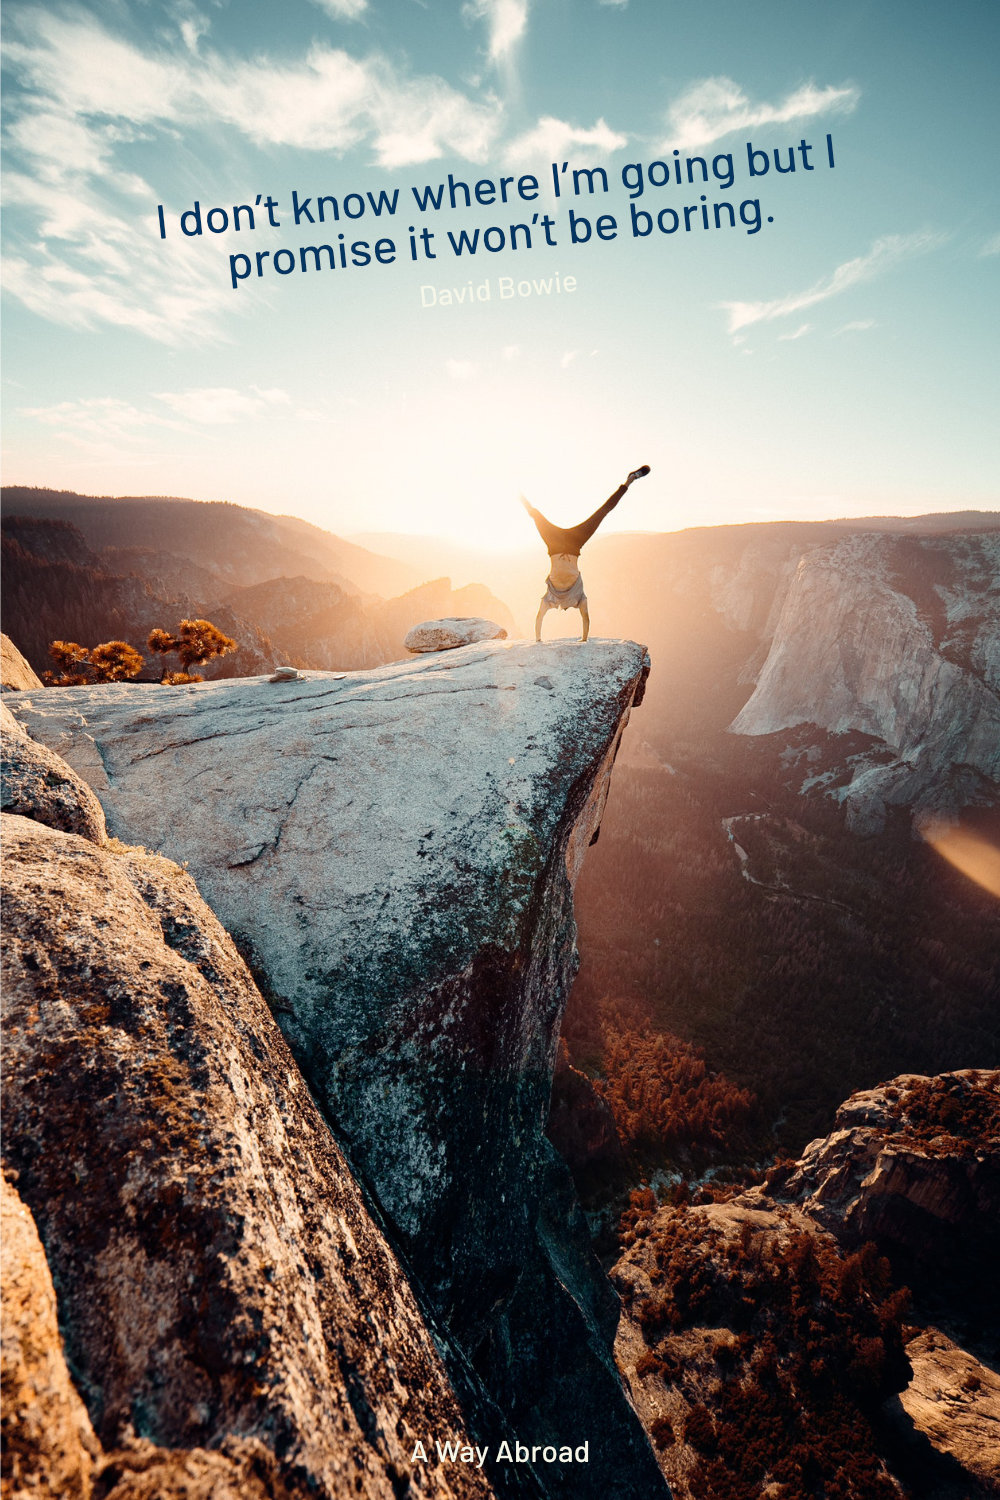 David Bowie quote stamped over a picture of someone doing a handstand on a cliff at sunset